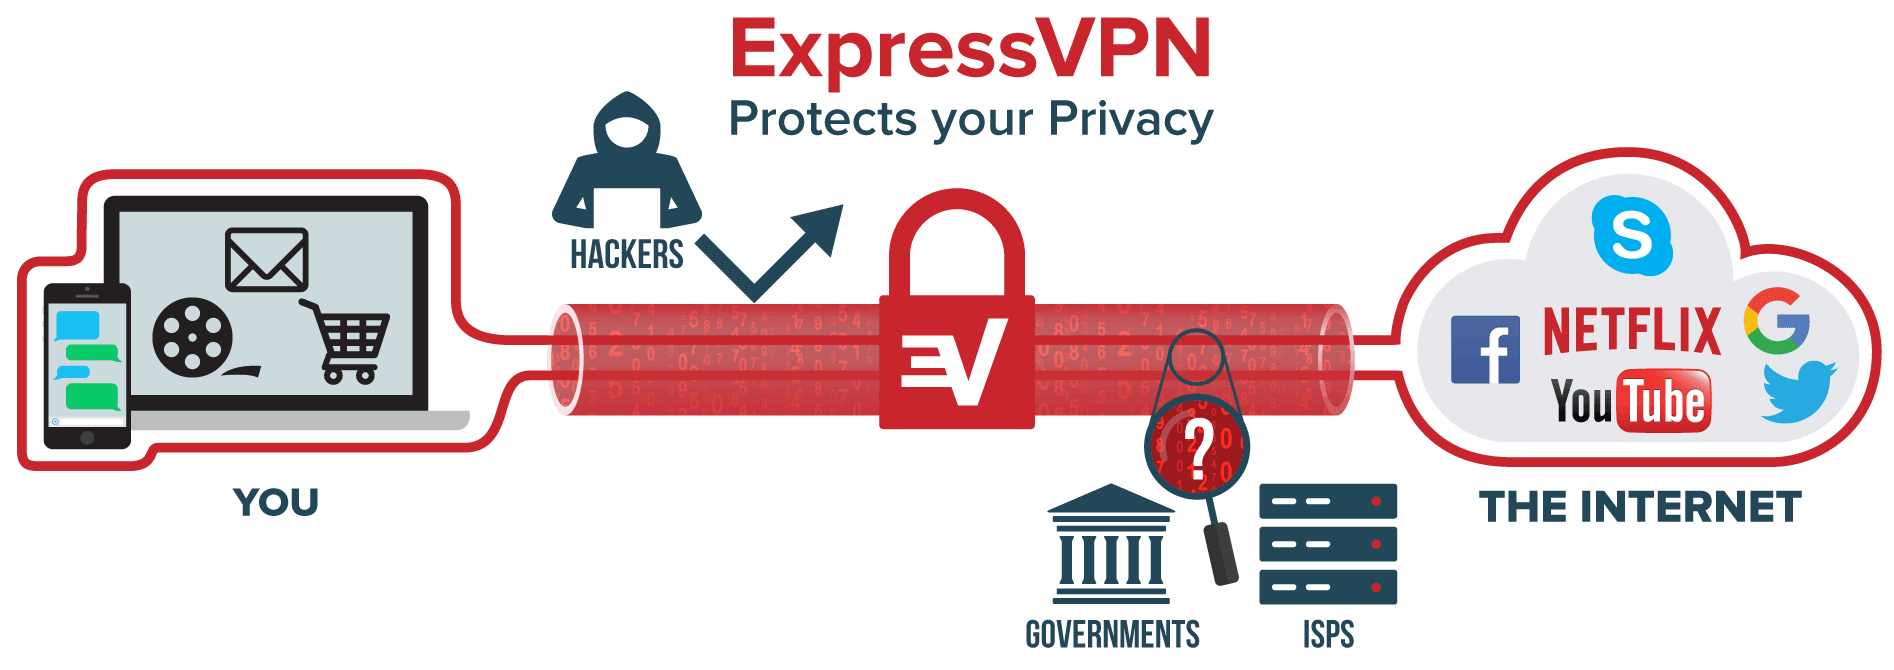 what is Express VPN